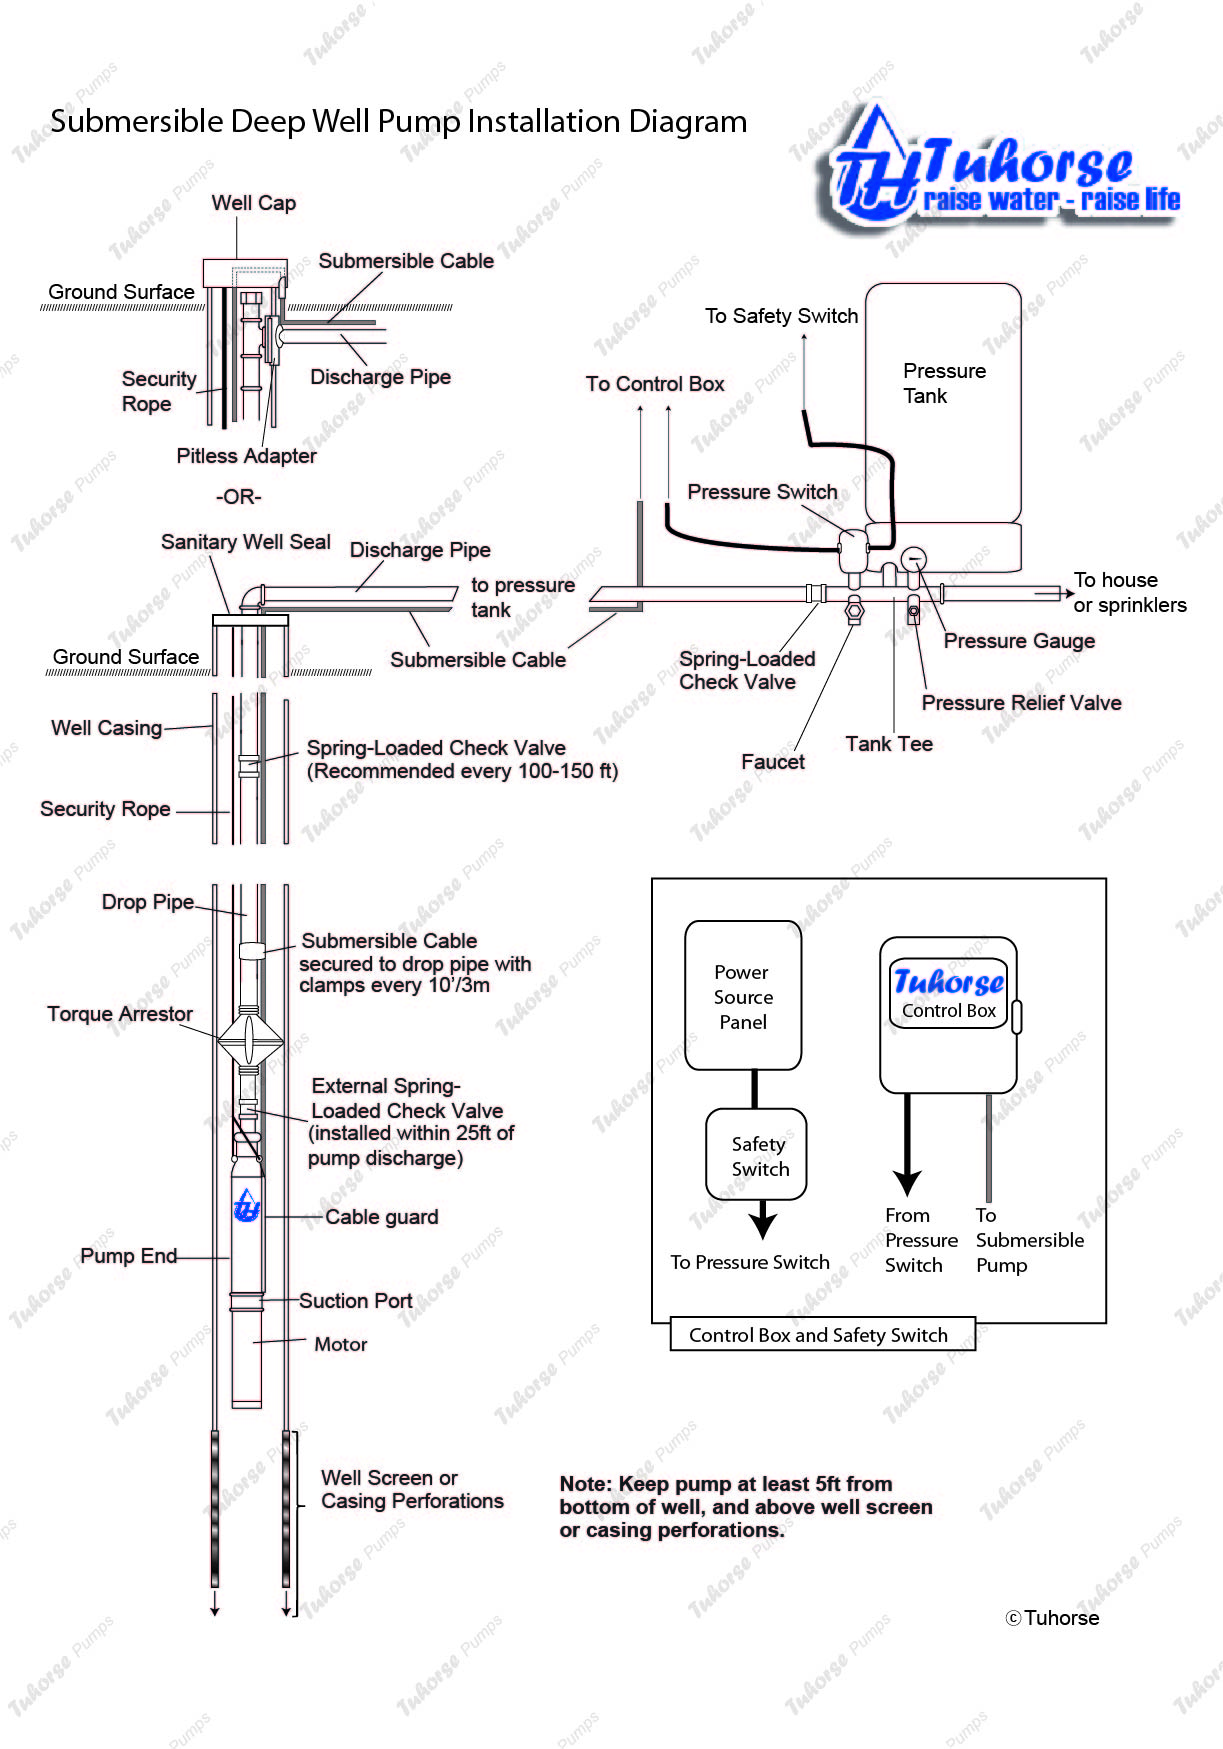 3 wire pump diagram wiring diagram Timer Wiring Diagram